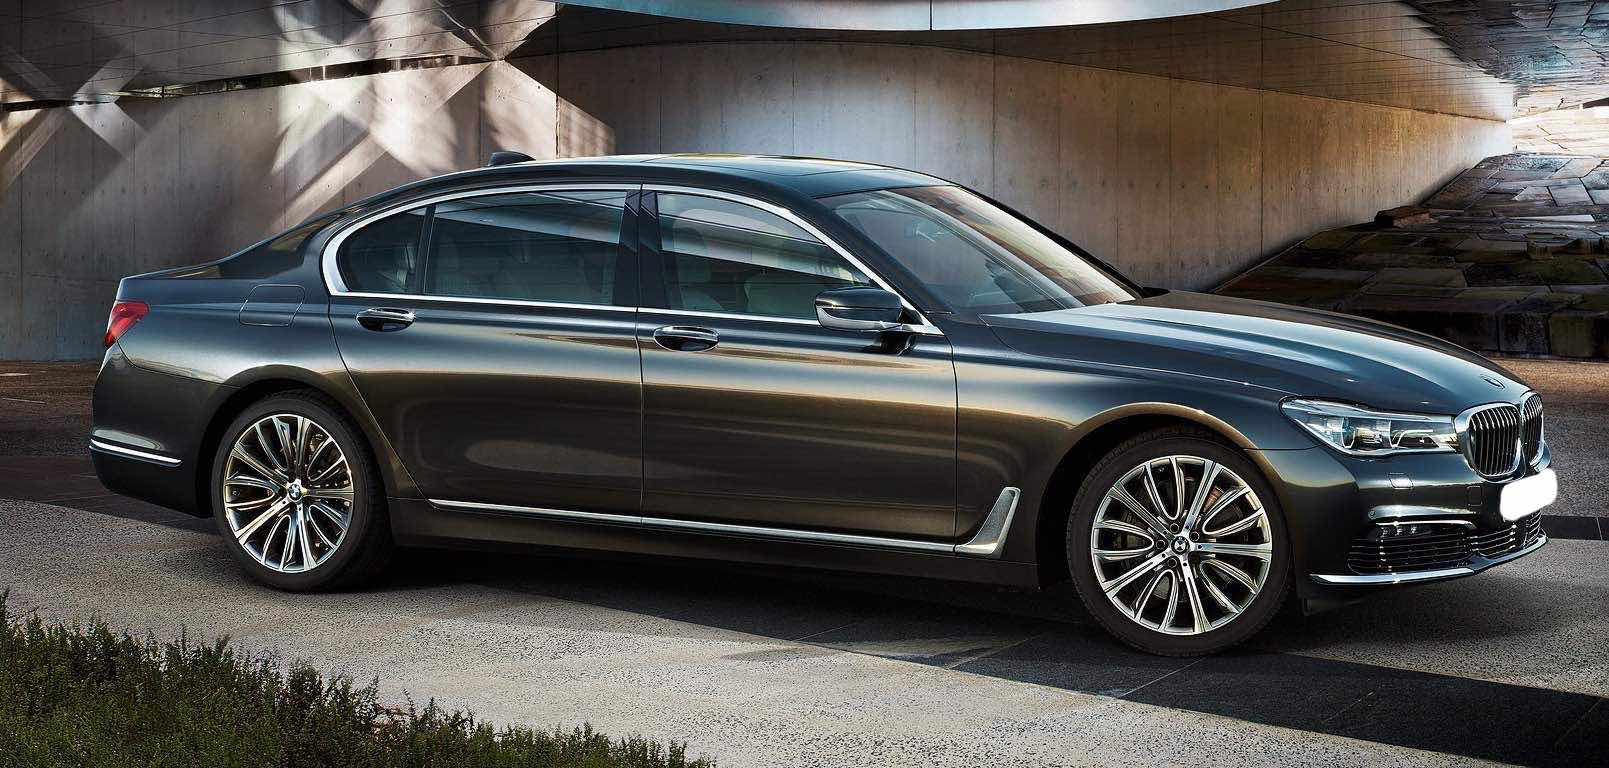 Luxury-in-motion-chauffeur-service-surrey-our-vehicles-bmw-7-series-main-image.jpg